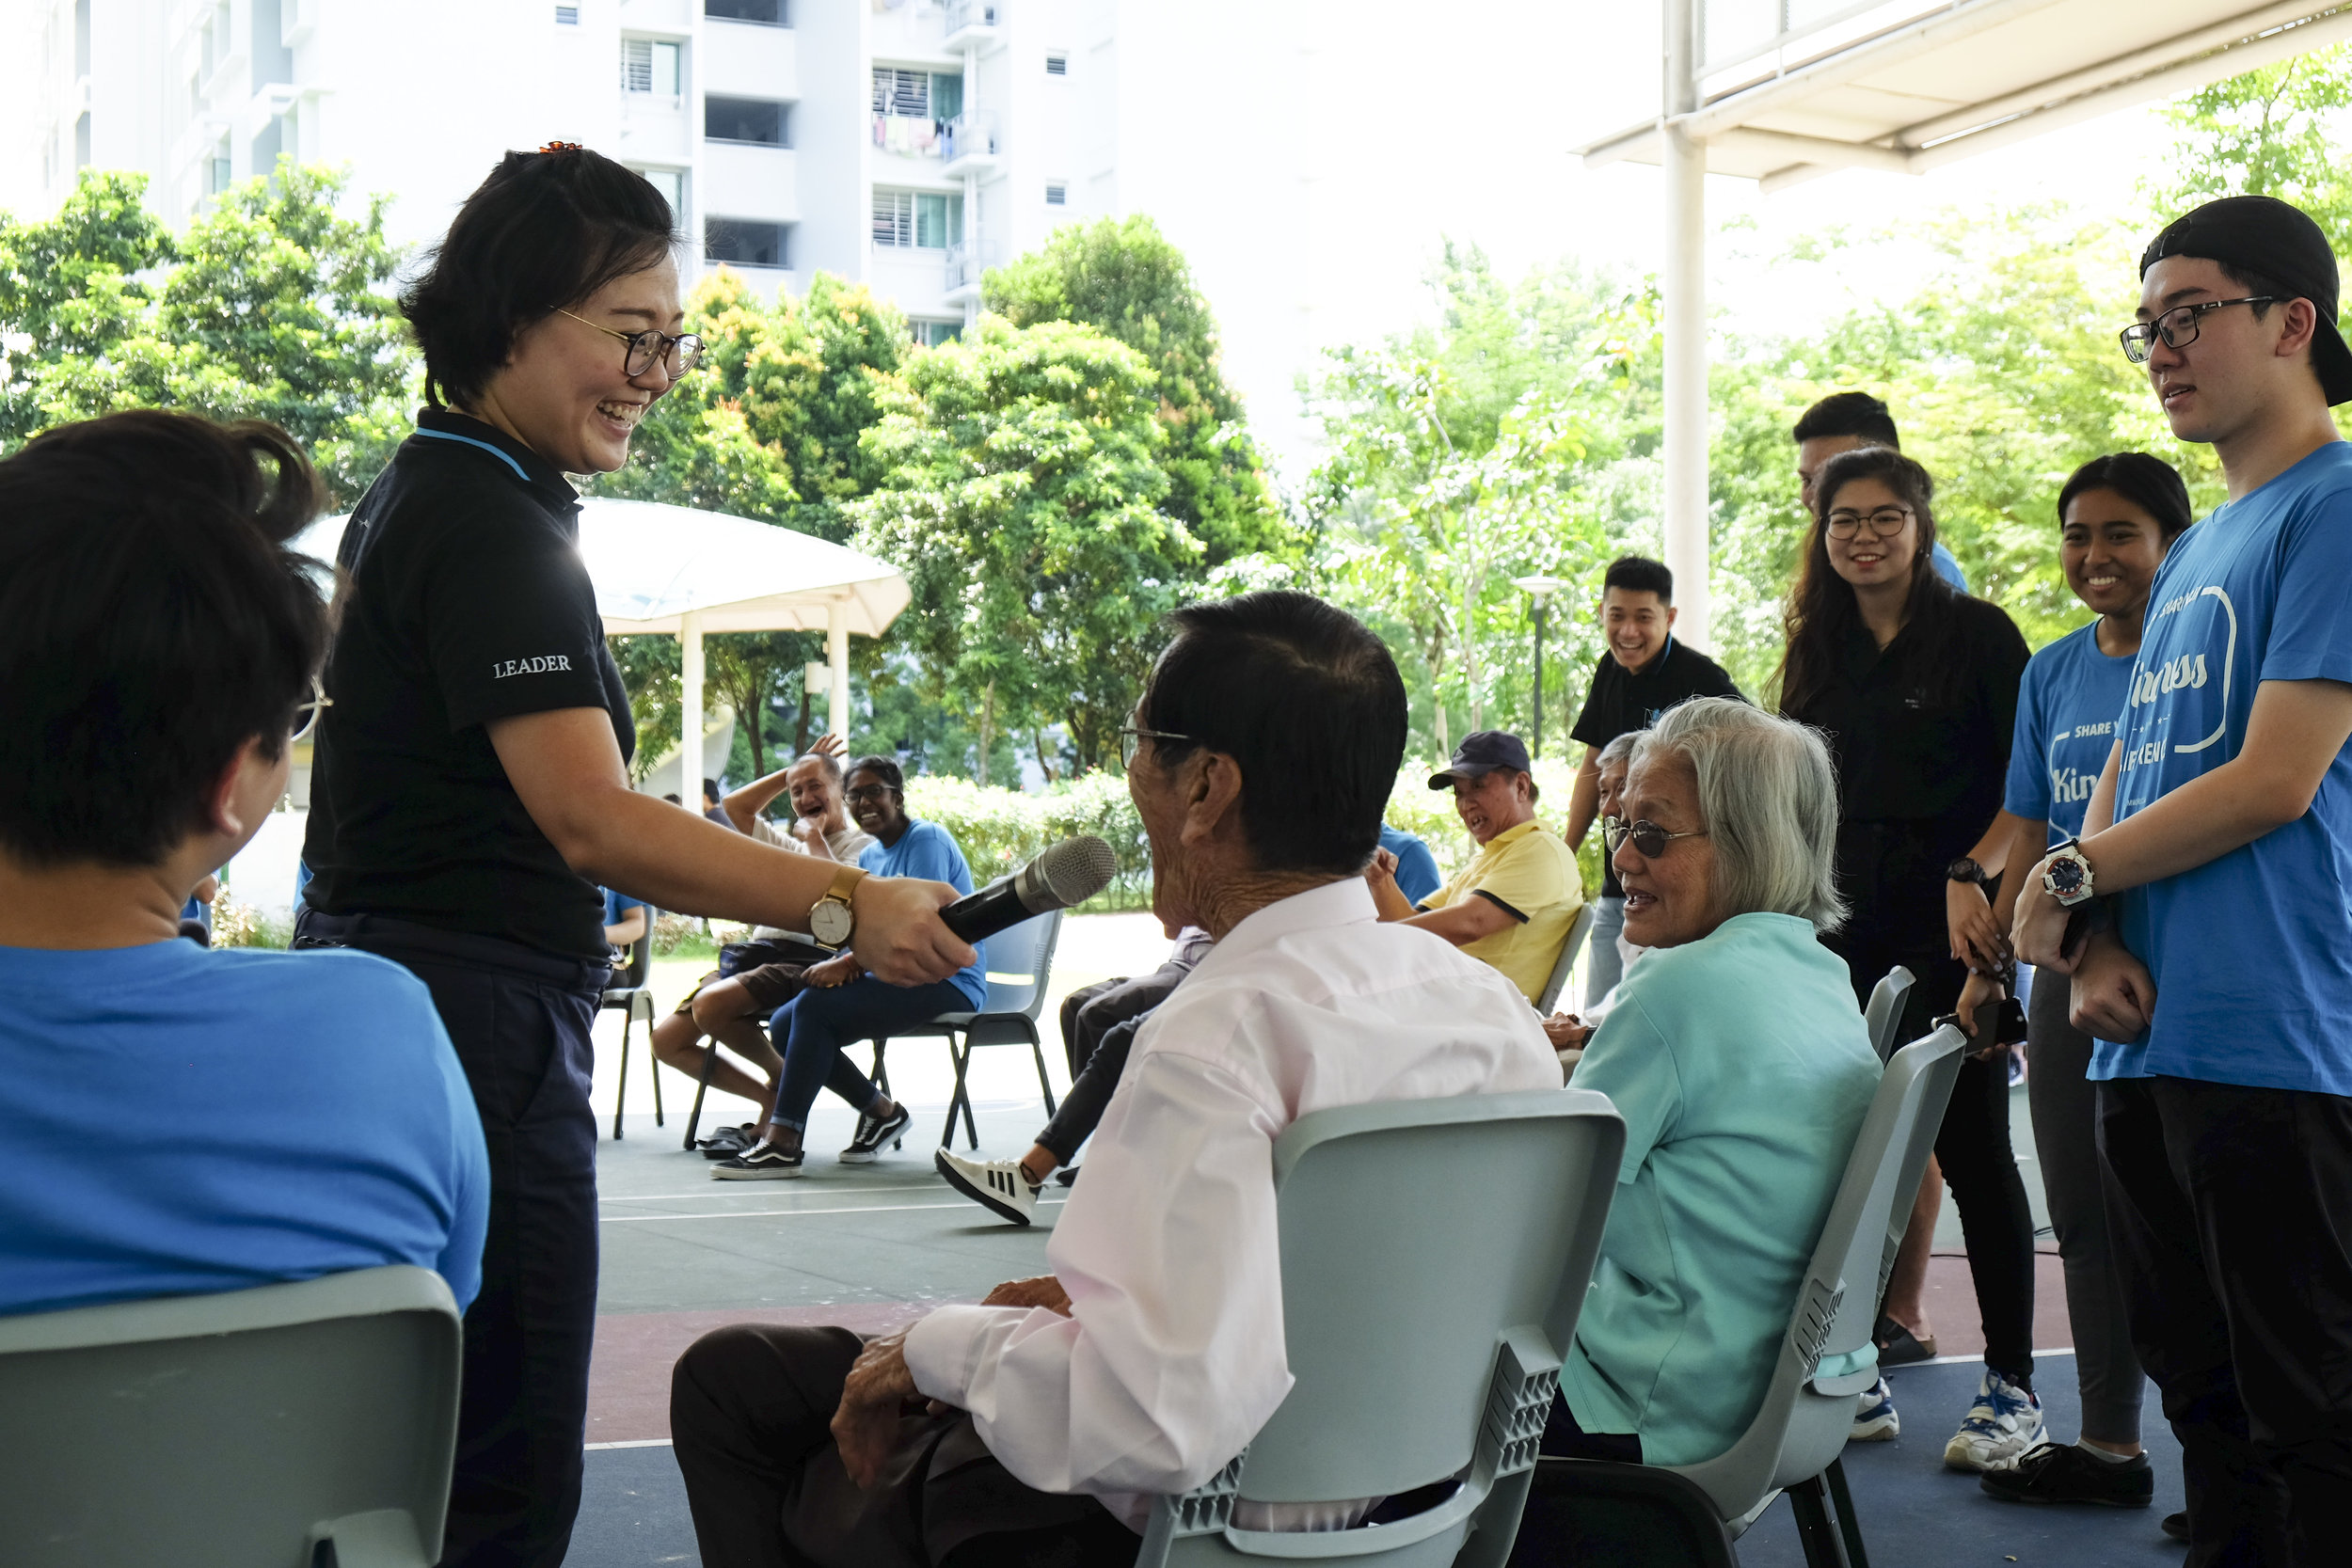 The ice-breakers consisted of the Laughing Game, created by one of CoLOVEful's planning team member and human BINGO. For the Laughing Game, the elderly were seated in a big circle, they would have to laugh out loud to the person on their right. They can make any kind of laughing sound or noise and pass it onto the next person. This activity was enjoyed by both the elderly and the volunteers as it got everyone laughing their bellies off! Human BINGO had the elderly to walk around (the circle made by the chair) to see what they could strike off after knowing a new fact about the others.